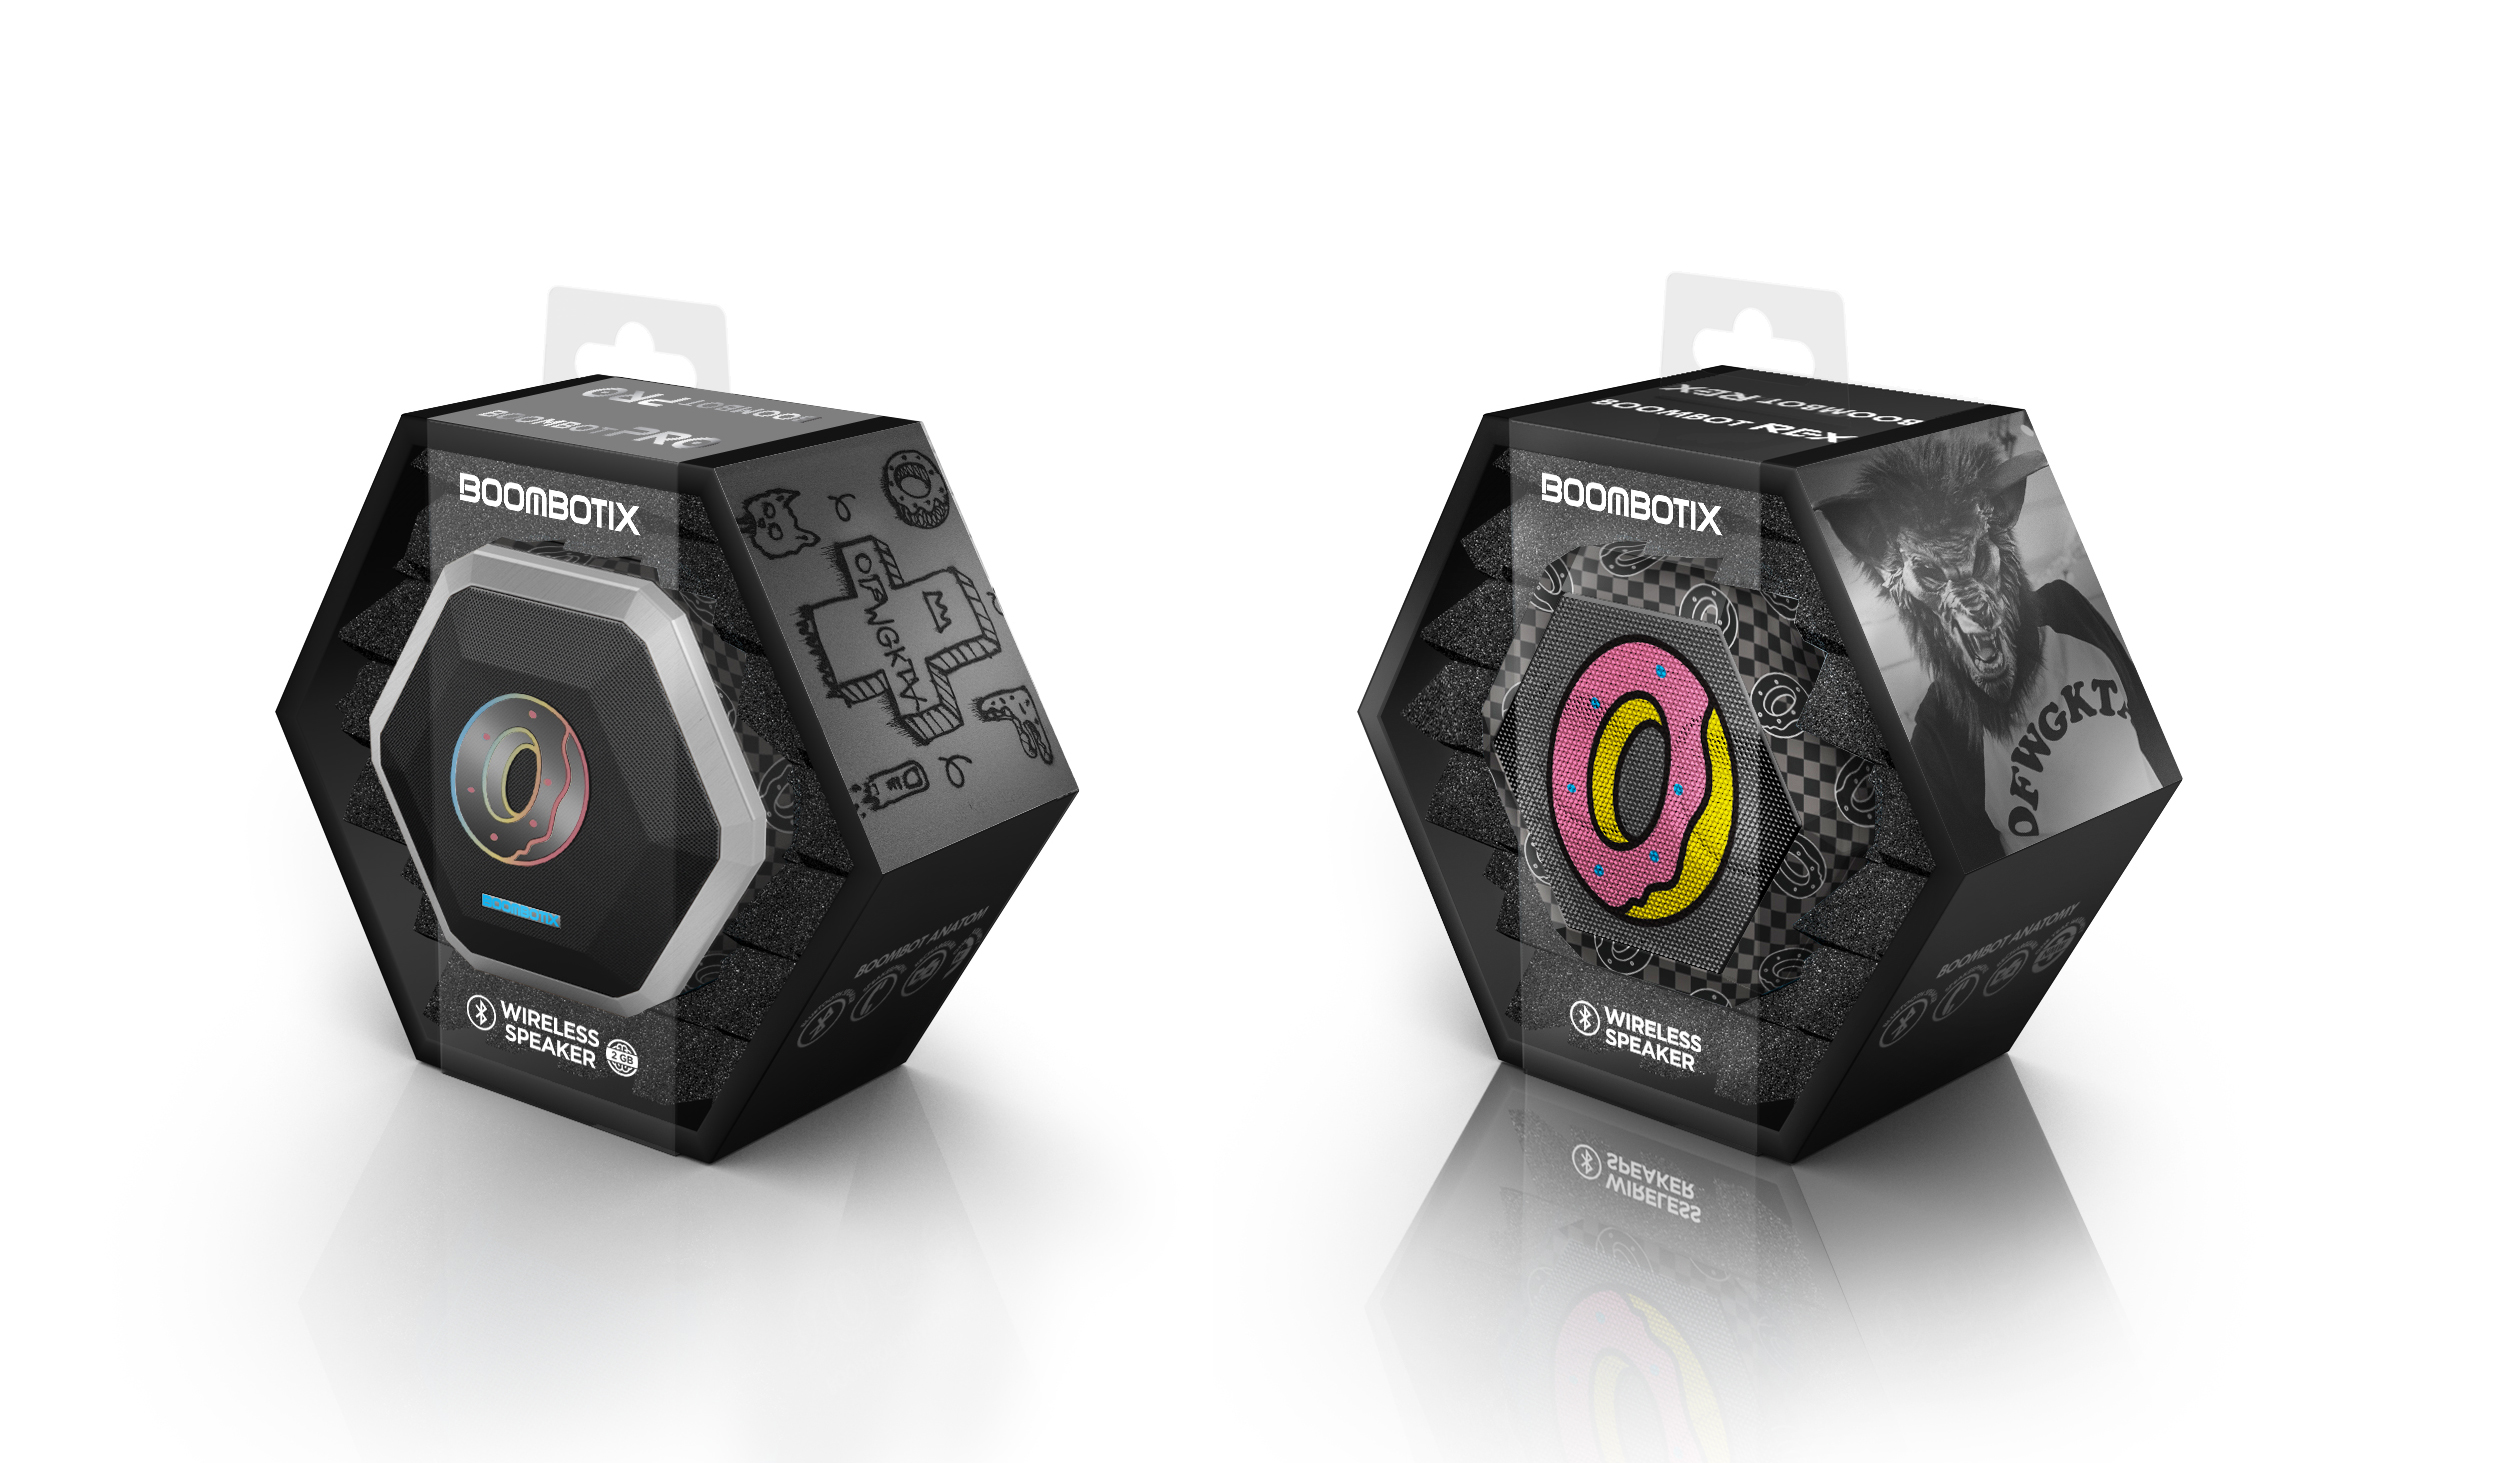 Packaging for odd future boombotix speaker with odd future imagery, donut graphics, and graffiti